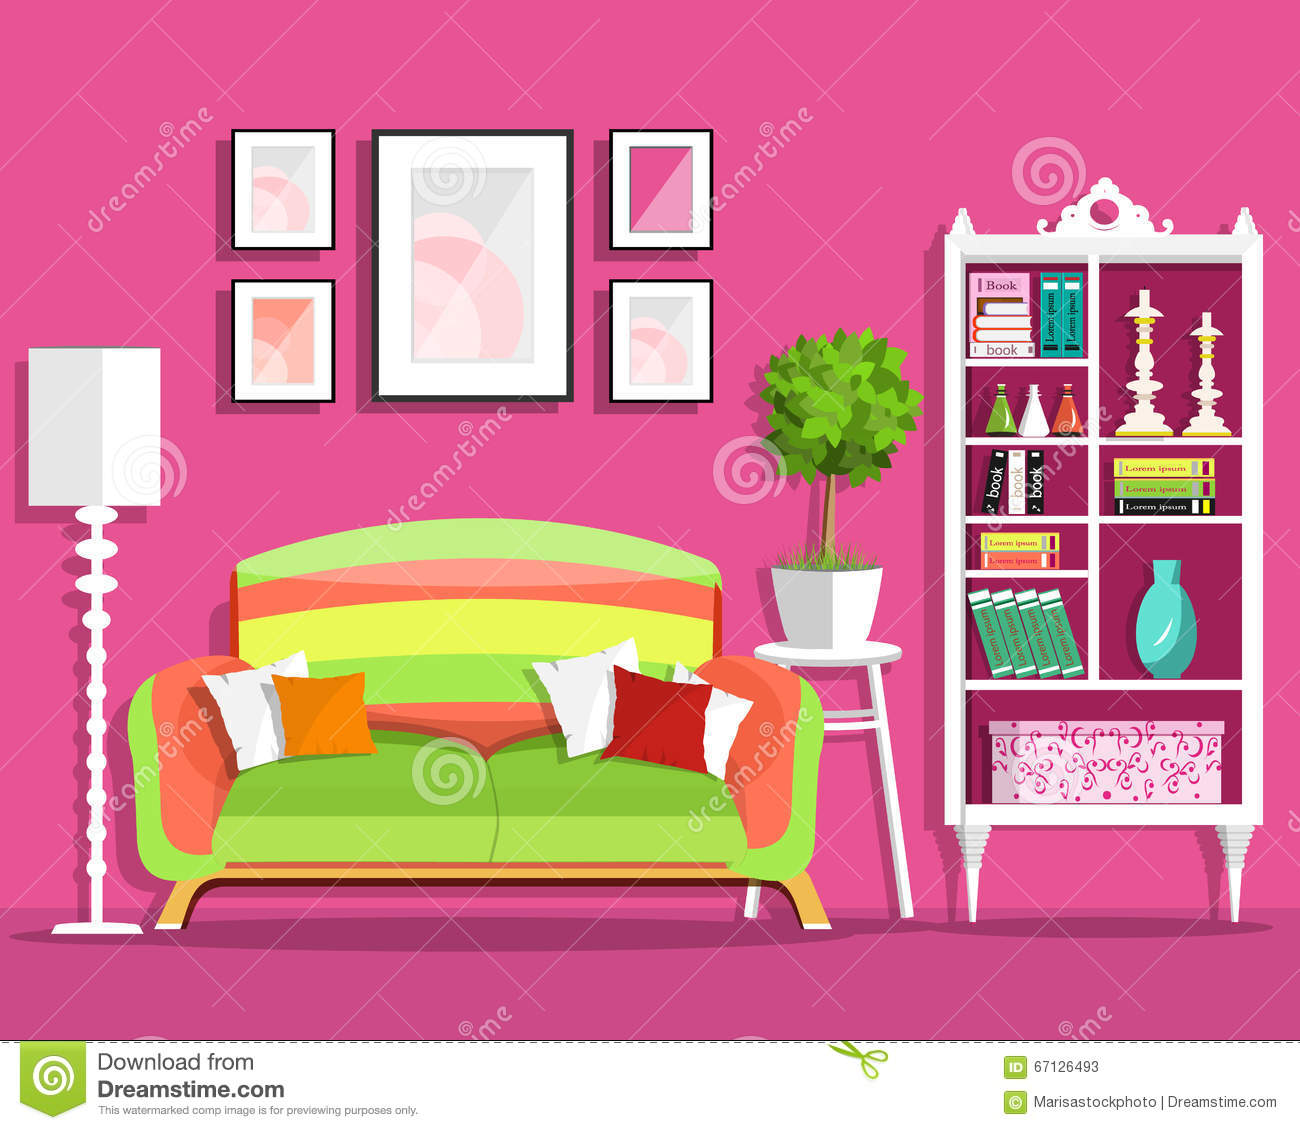 Cute Graphic Living Room Interior Design With Furniture